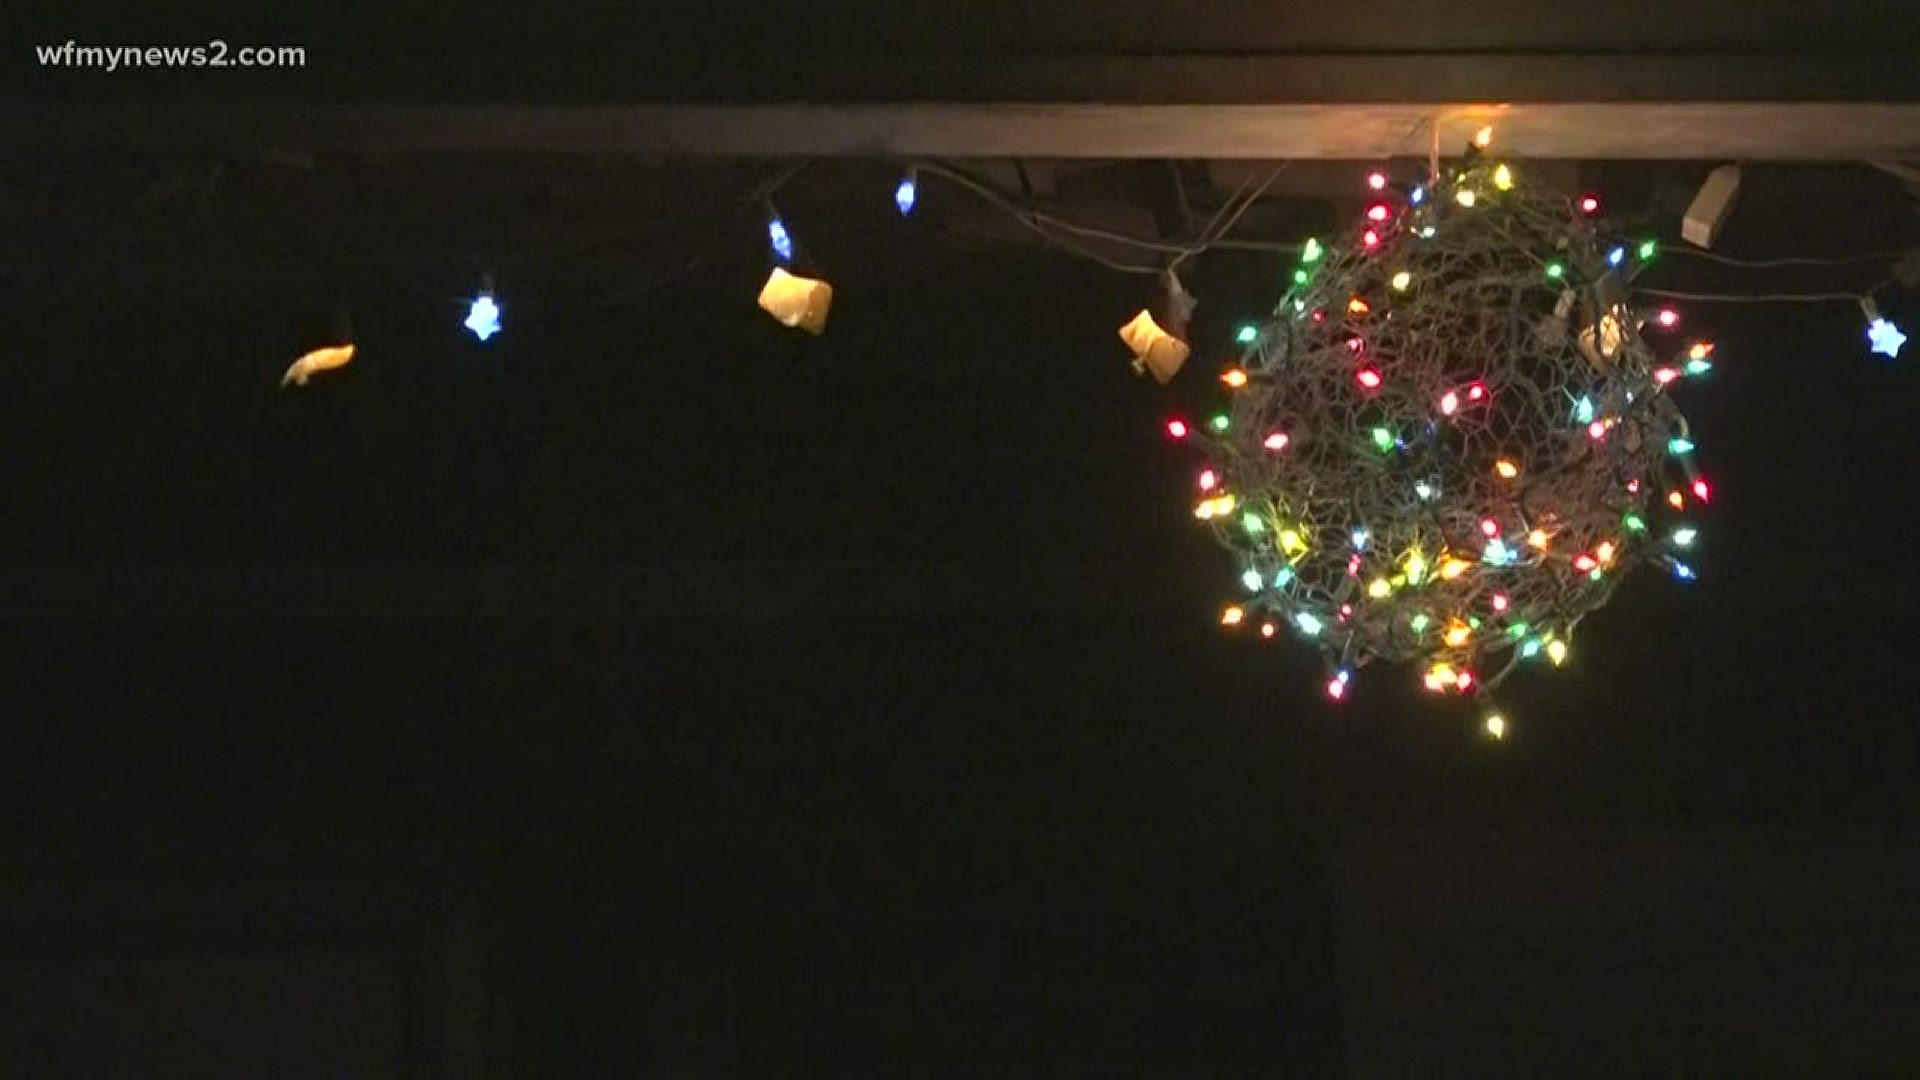 Christmas Lights In Greensboro Nc 2020 Anything that will brighten your day helps' | Homeowners in